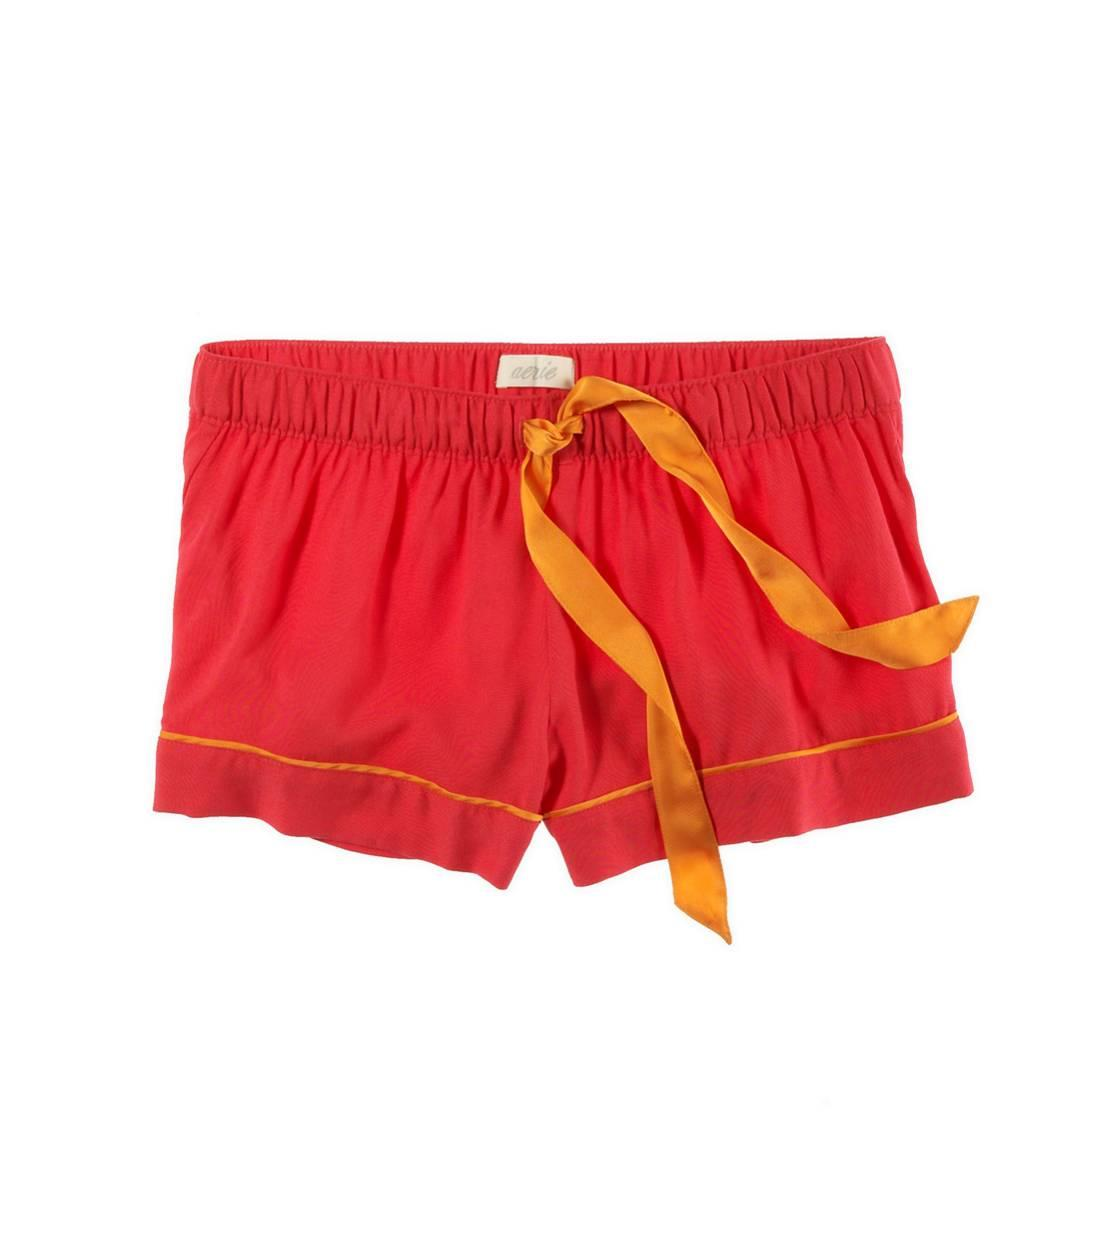 Aerie Piped Boxer | Aerie for American Eagle